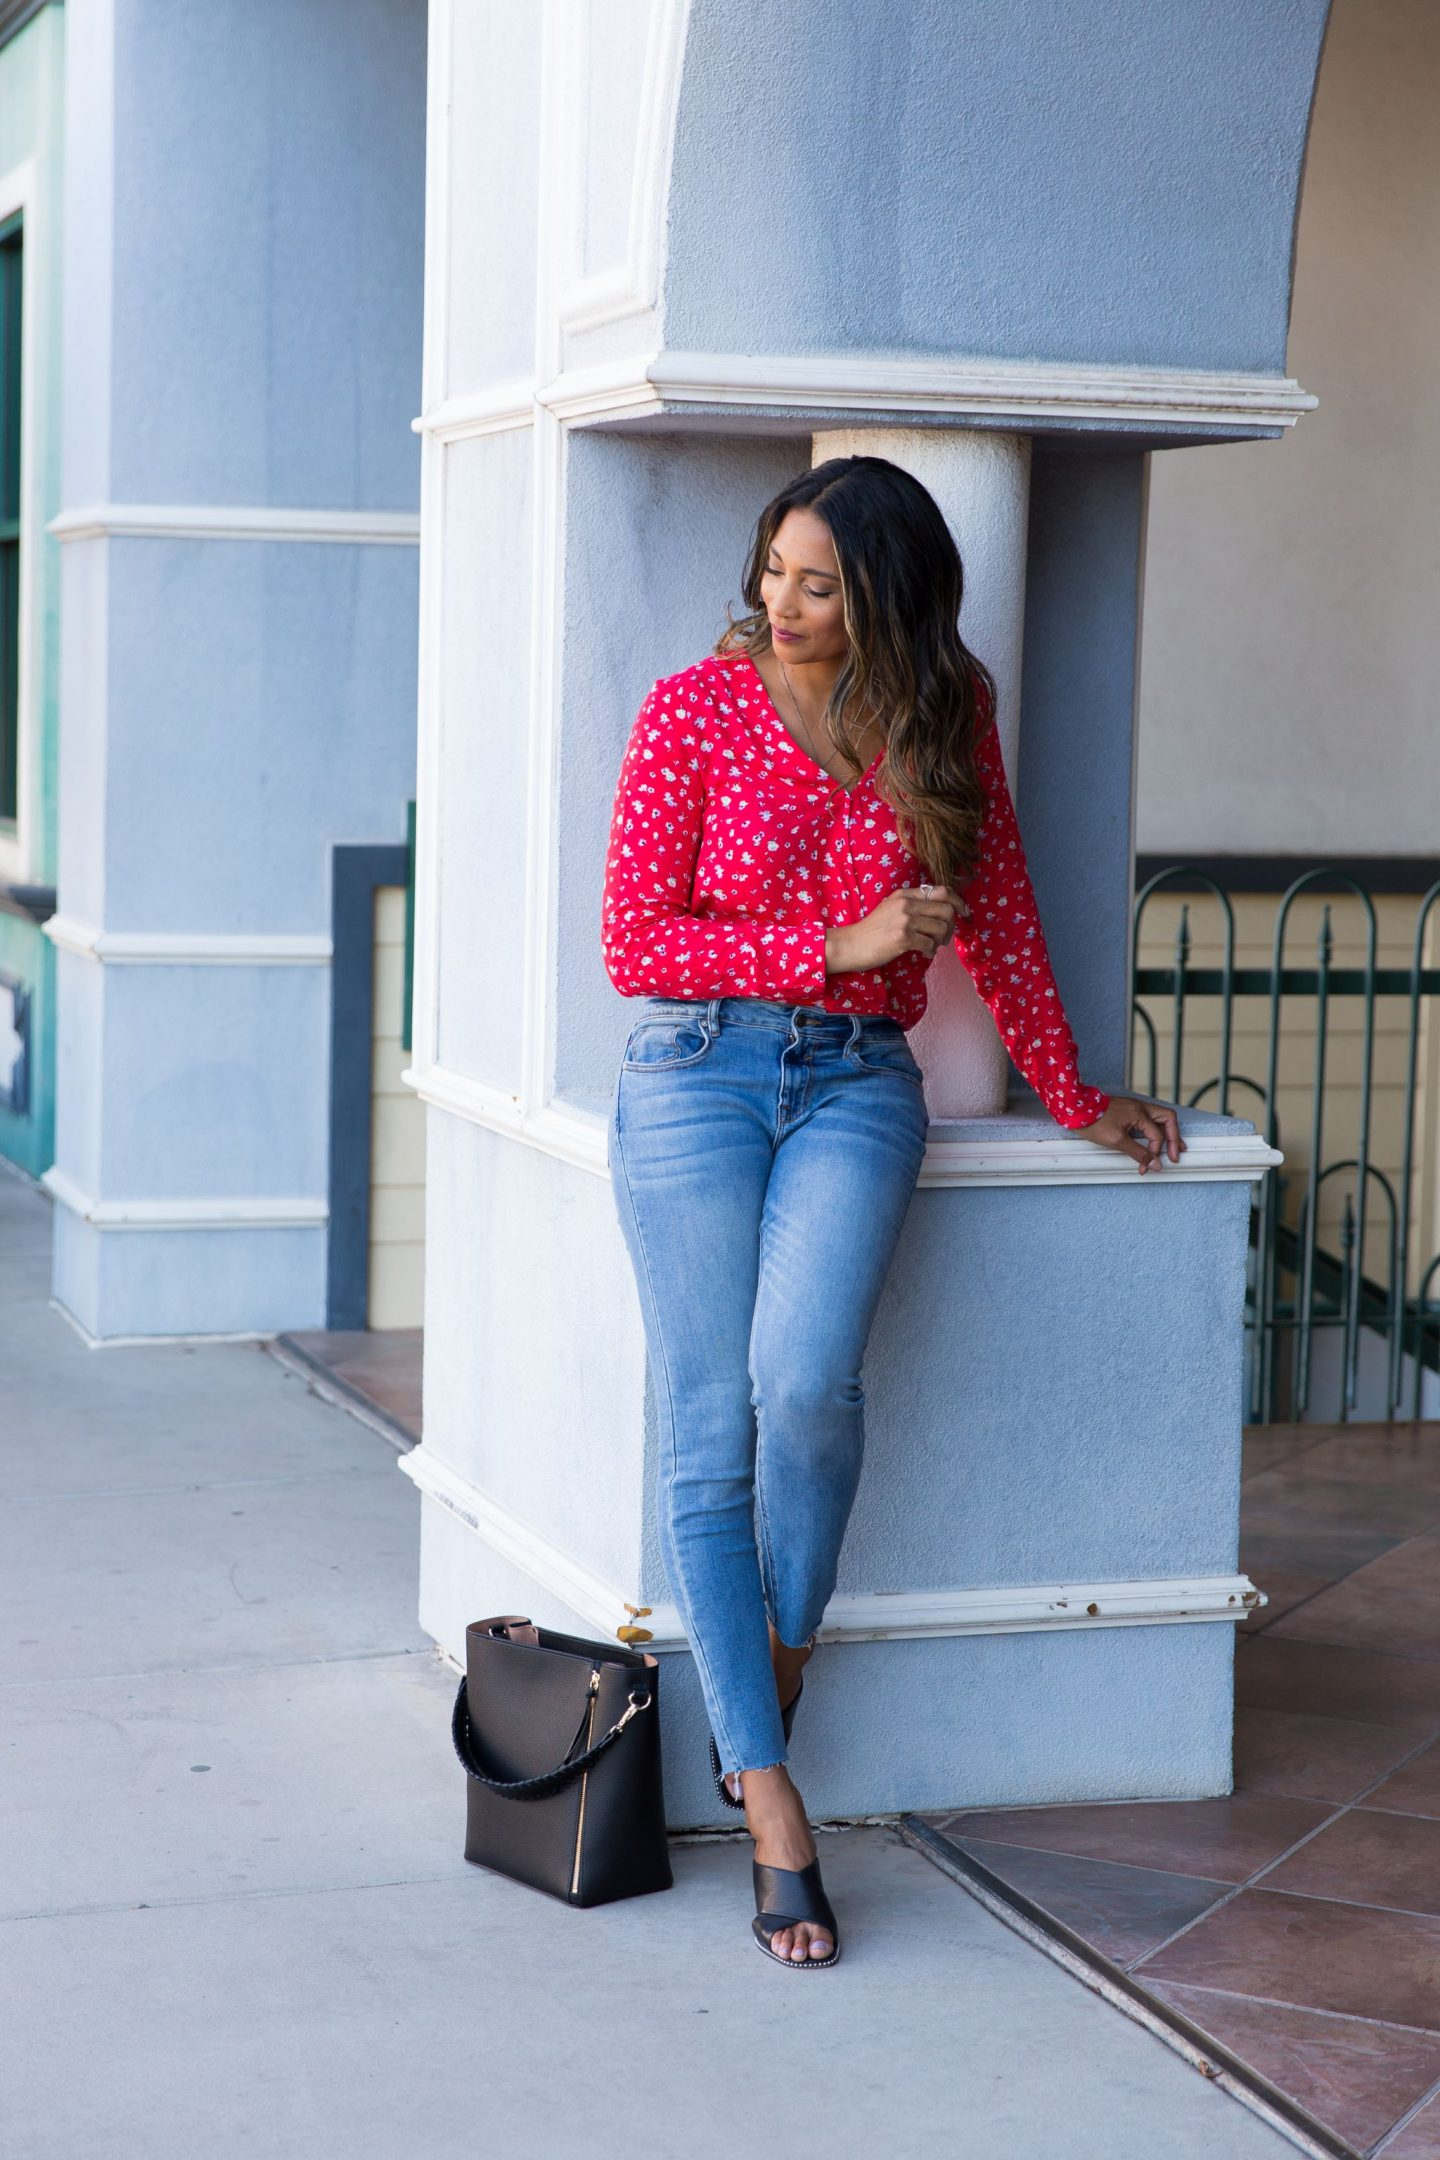 FALL FASHIO, WHAT TO WEAR, STYLE INSPIRATION, BLOGGER STYLE, ARIZONA BLOGGER